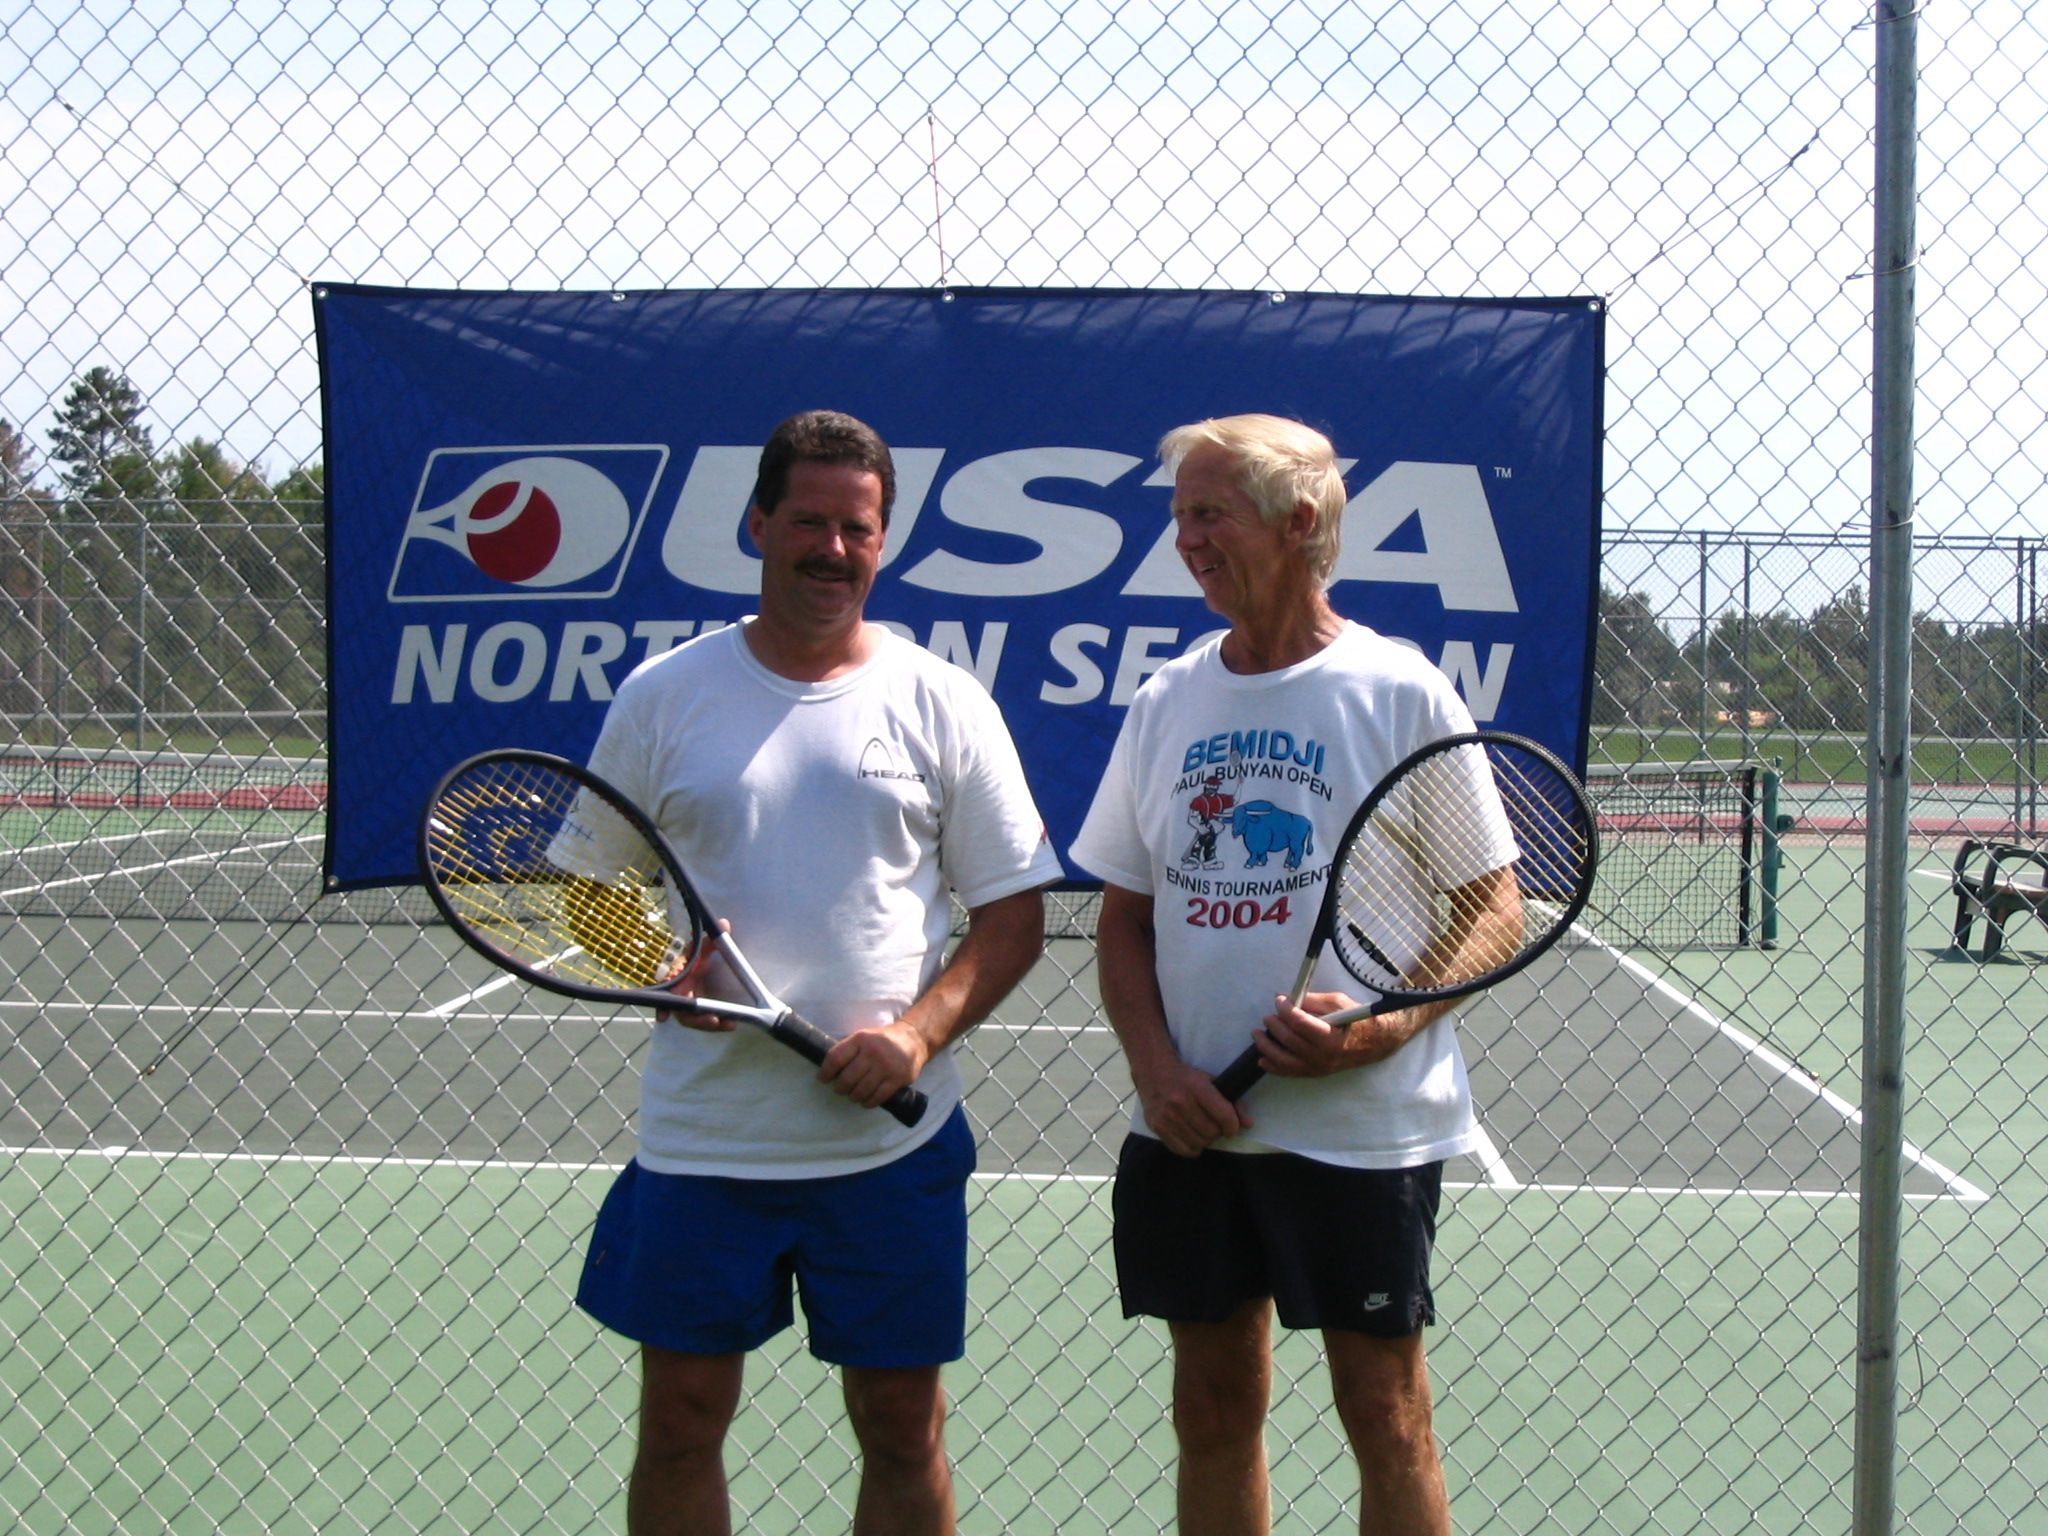 '06 Paul Bunyan Open 4.0 & Above Men's Doubles Champs